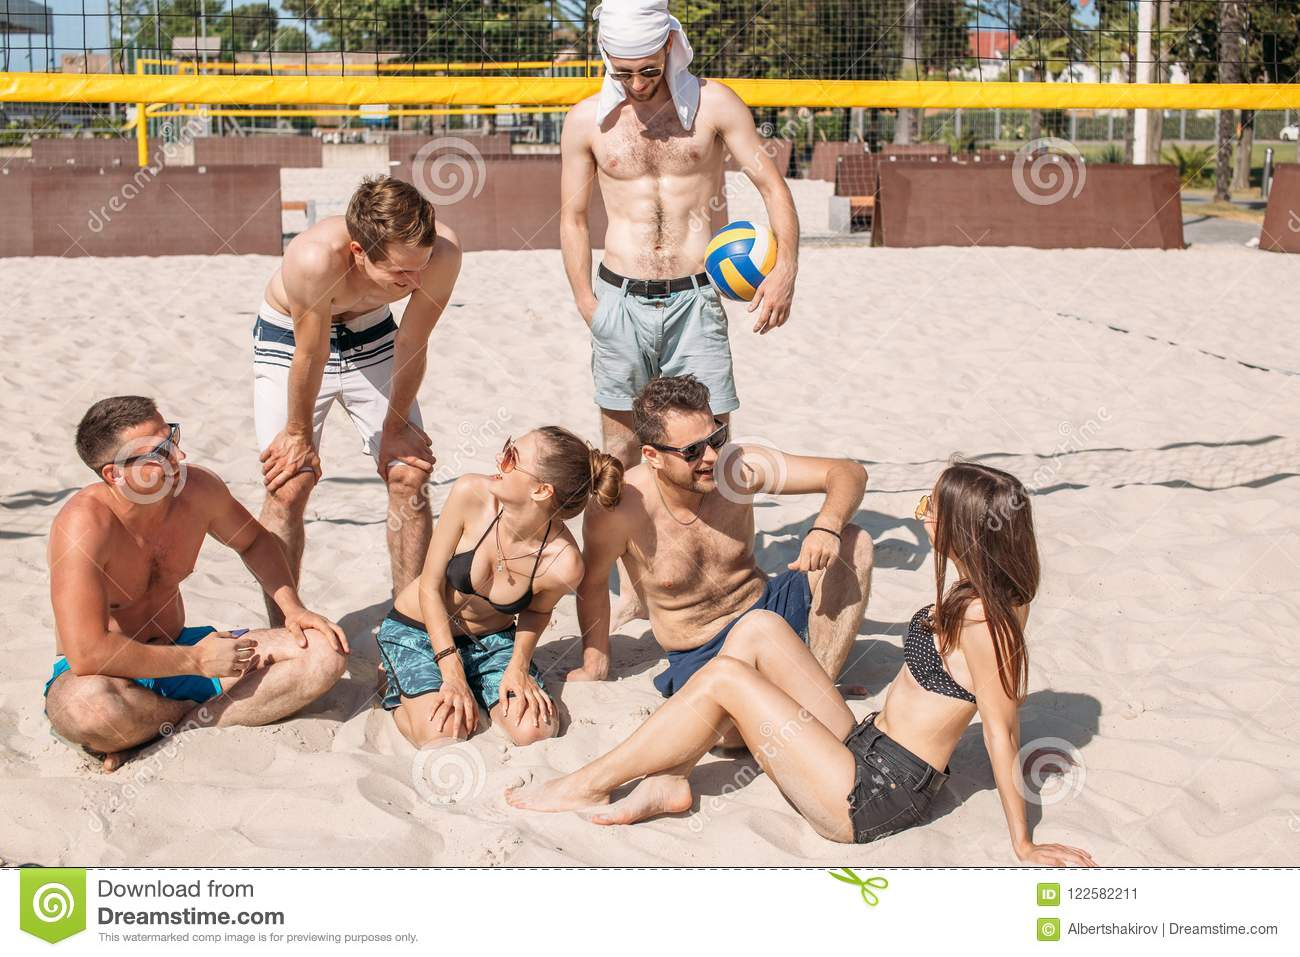 Group of caucasian friends resting at interval between sets on beach court.